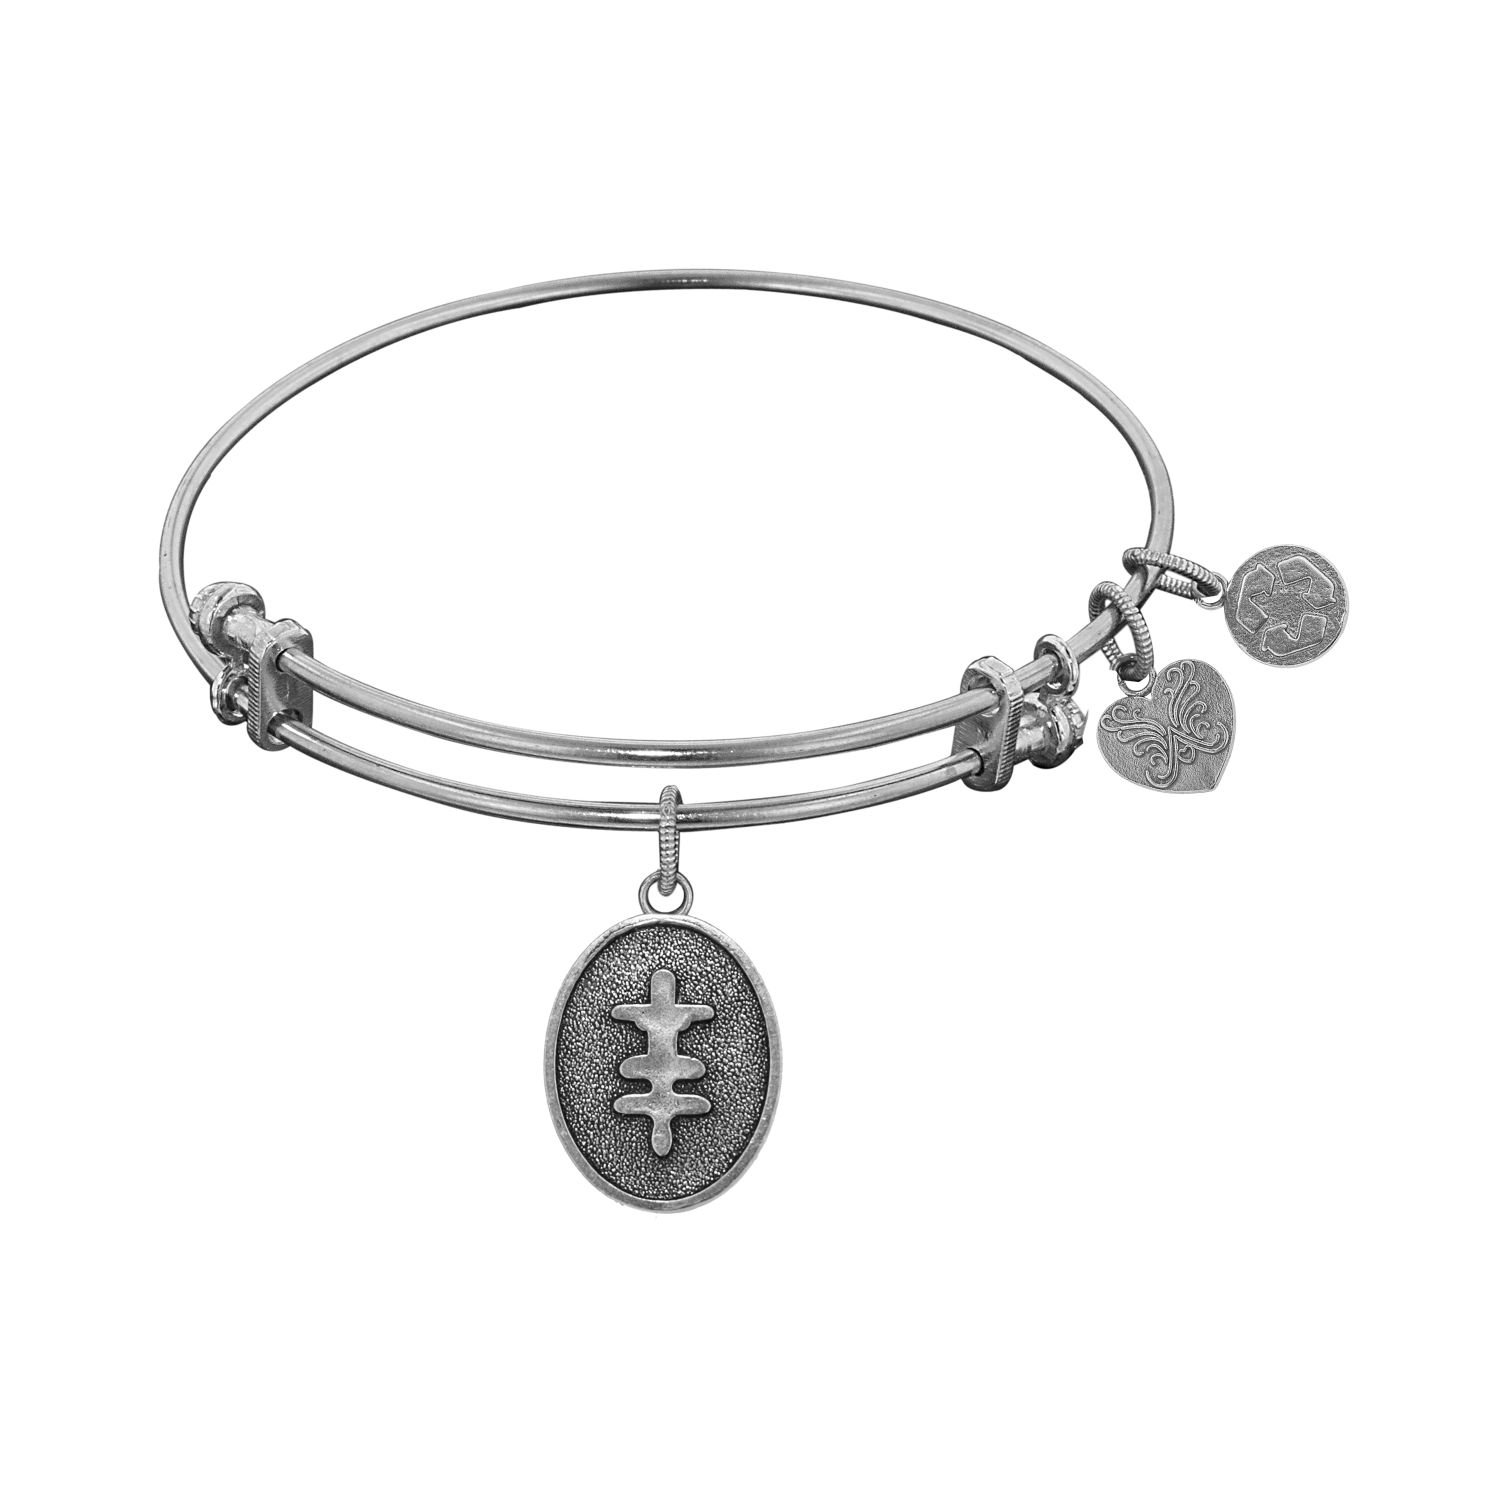 WGEL1131 Angelica Ladies Inspirational Collection Bangle Charm 7.25 Inches Adjustable